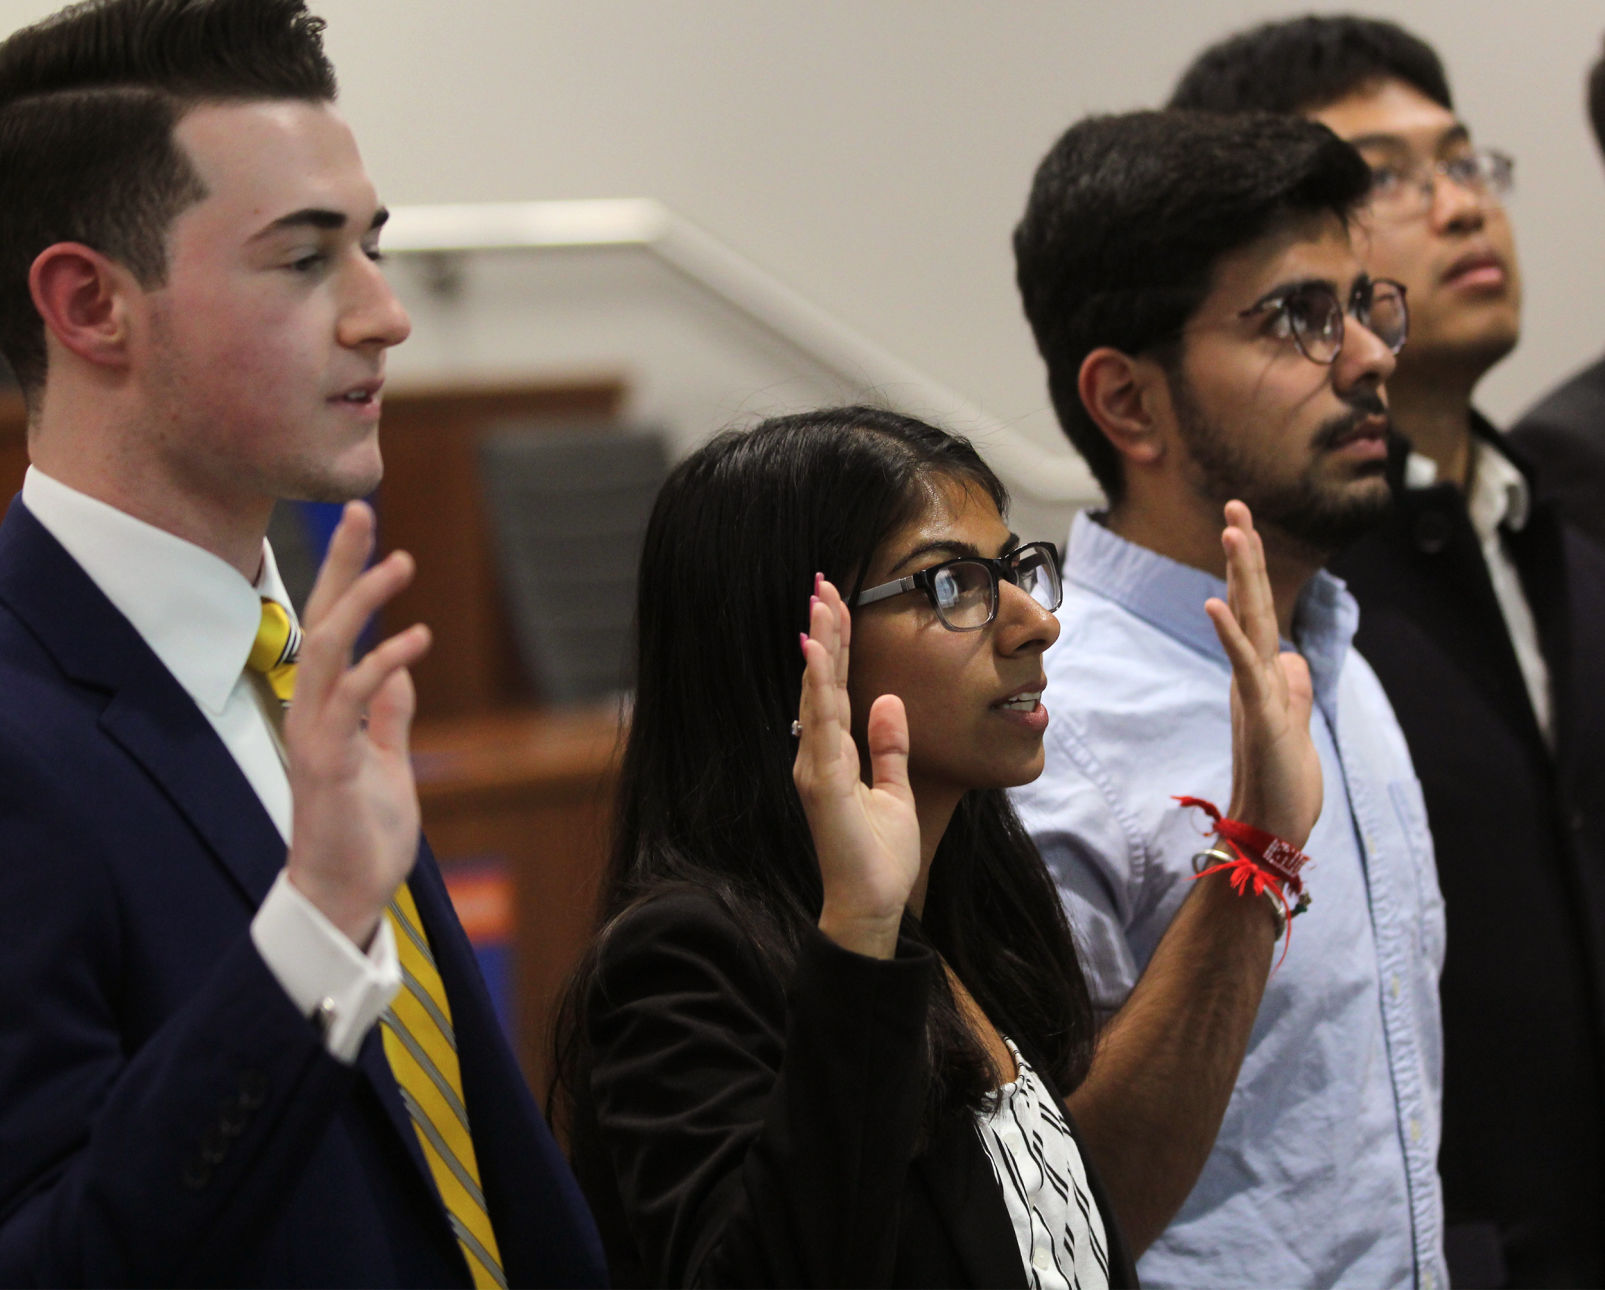 Student Senate appoints new leaders, assigns resolutions